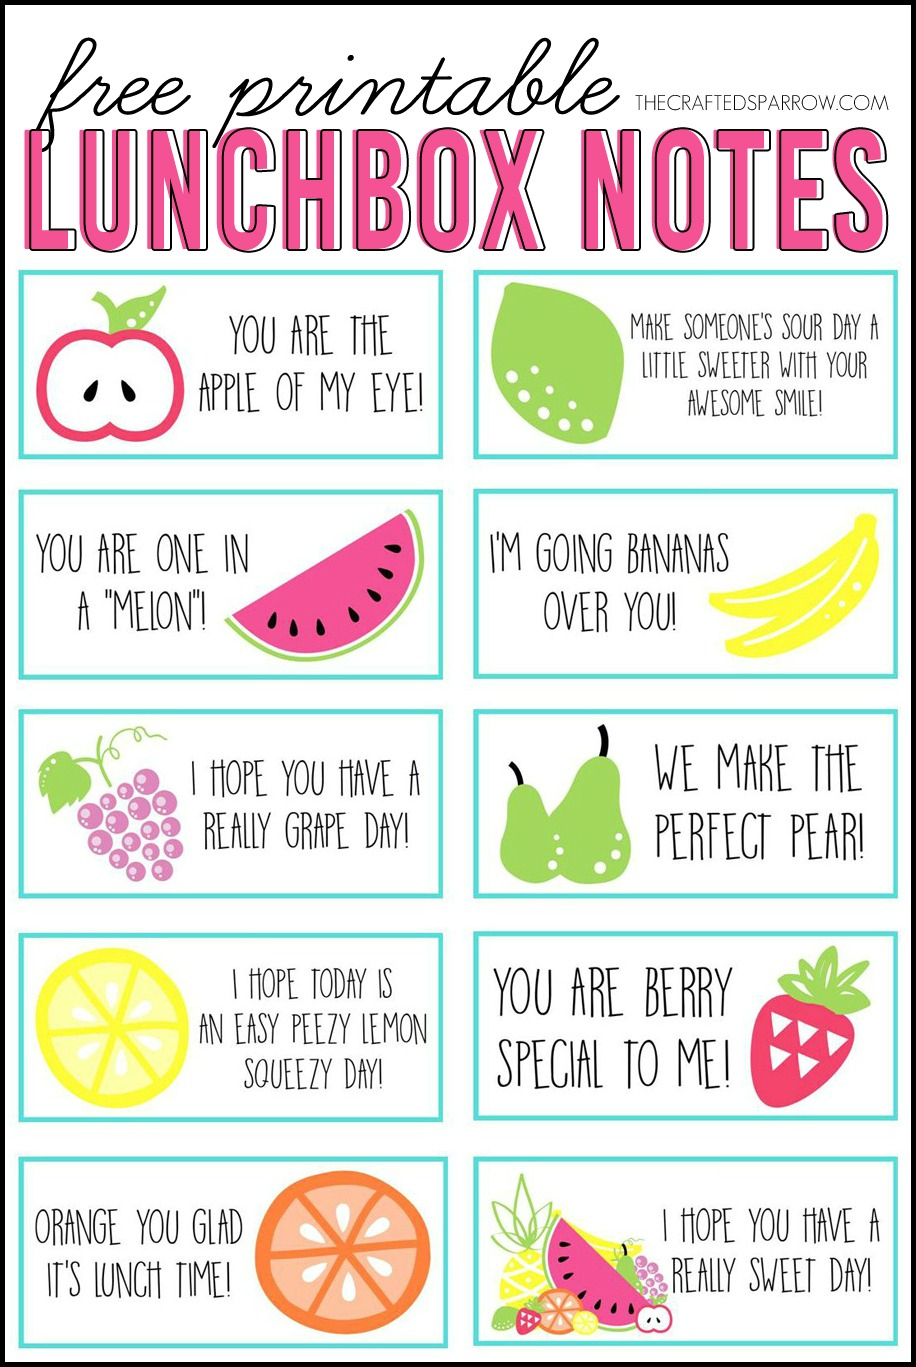 Free Printable Lunchbox Notes - Free Printable Jokes For Adults